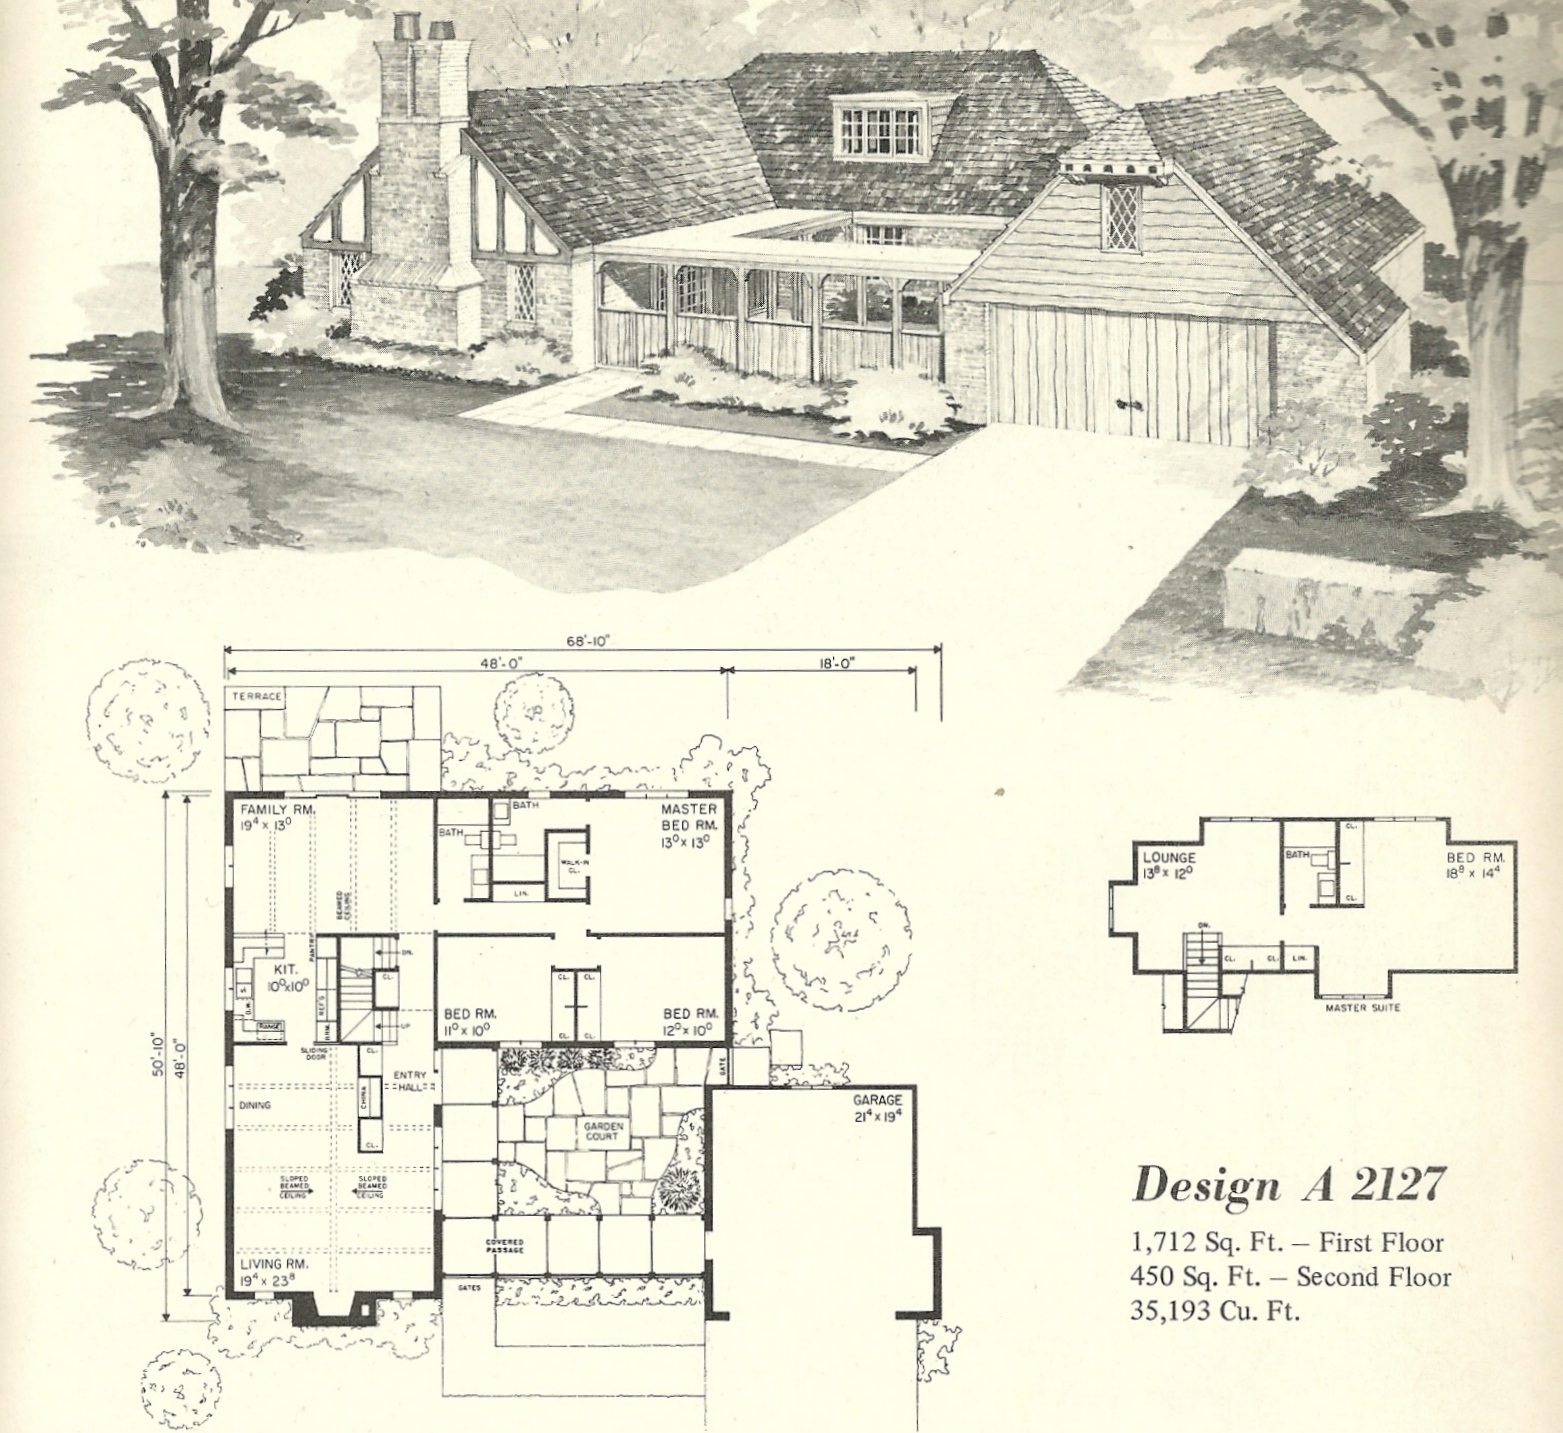 Vintage house plans 2127 for Vintage ranch house plans